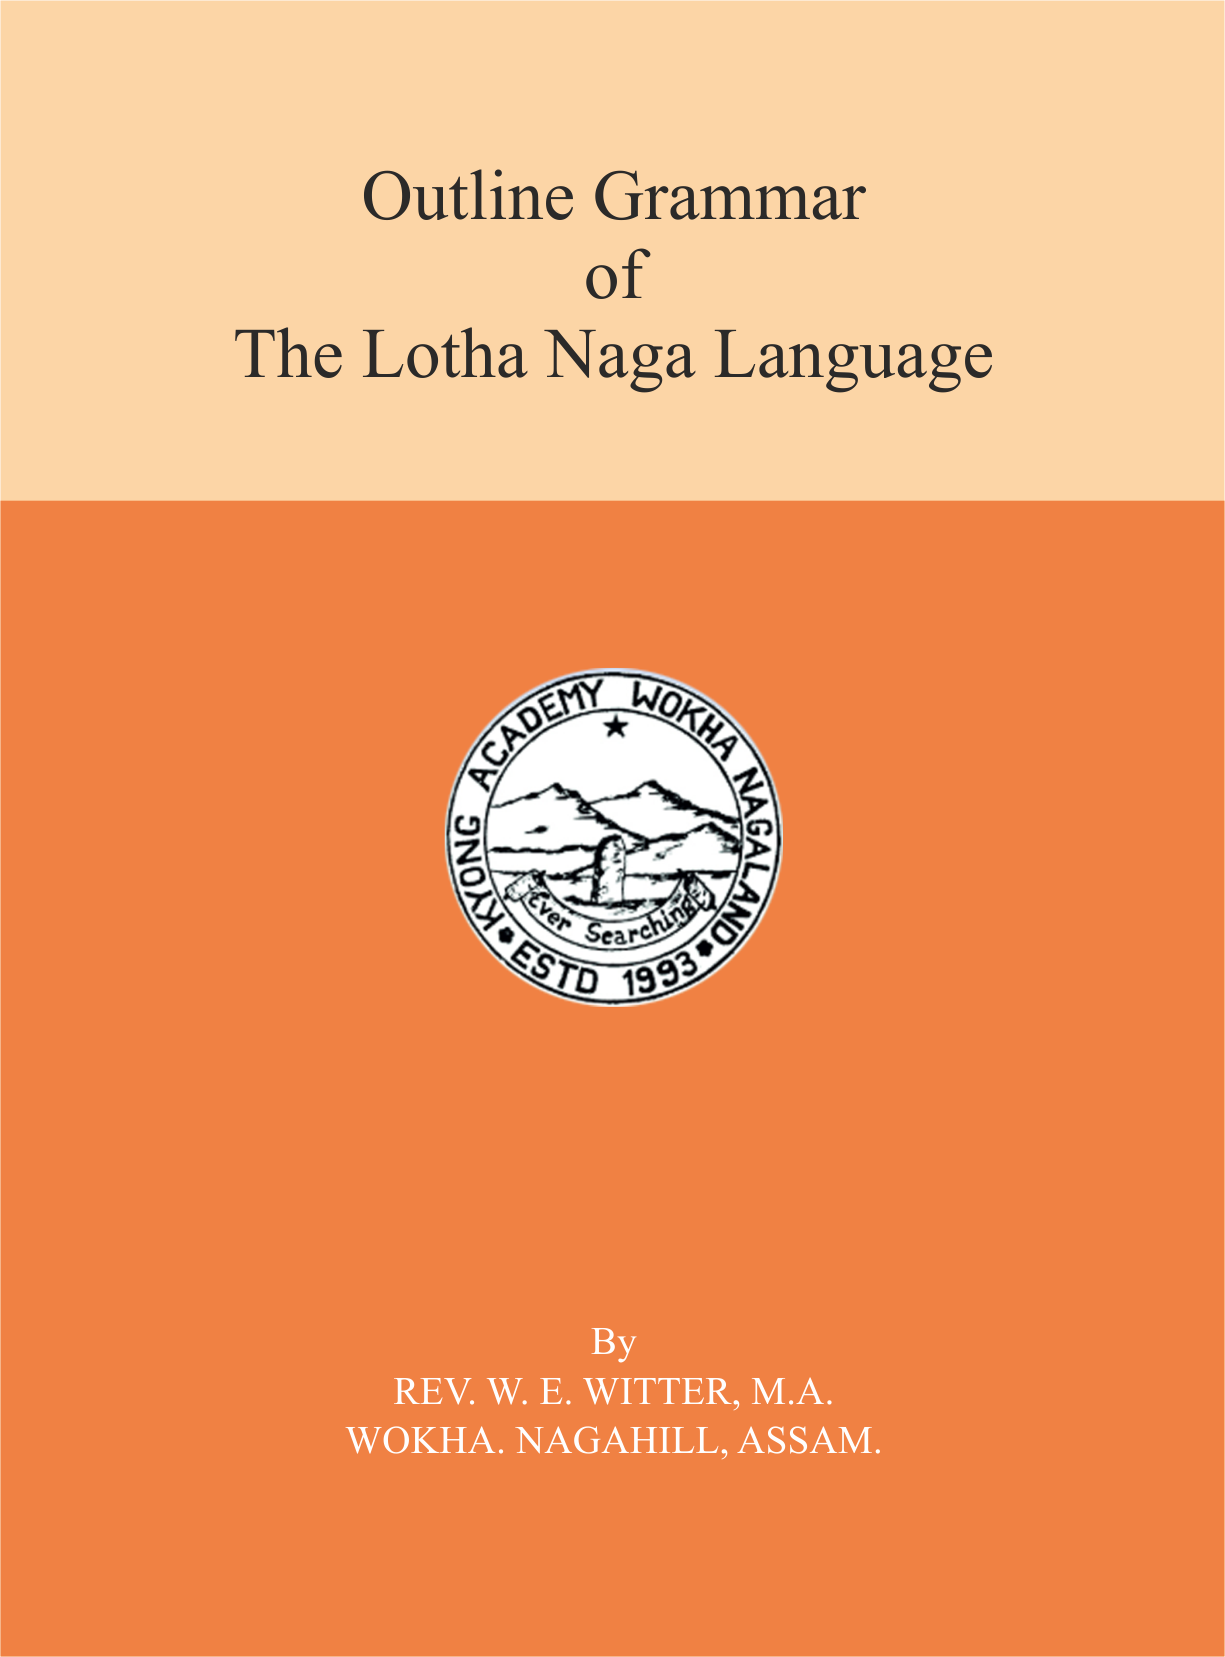 Outline Grammar of The Lotha Naga Language